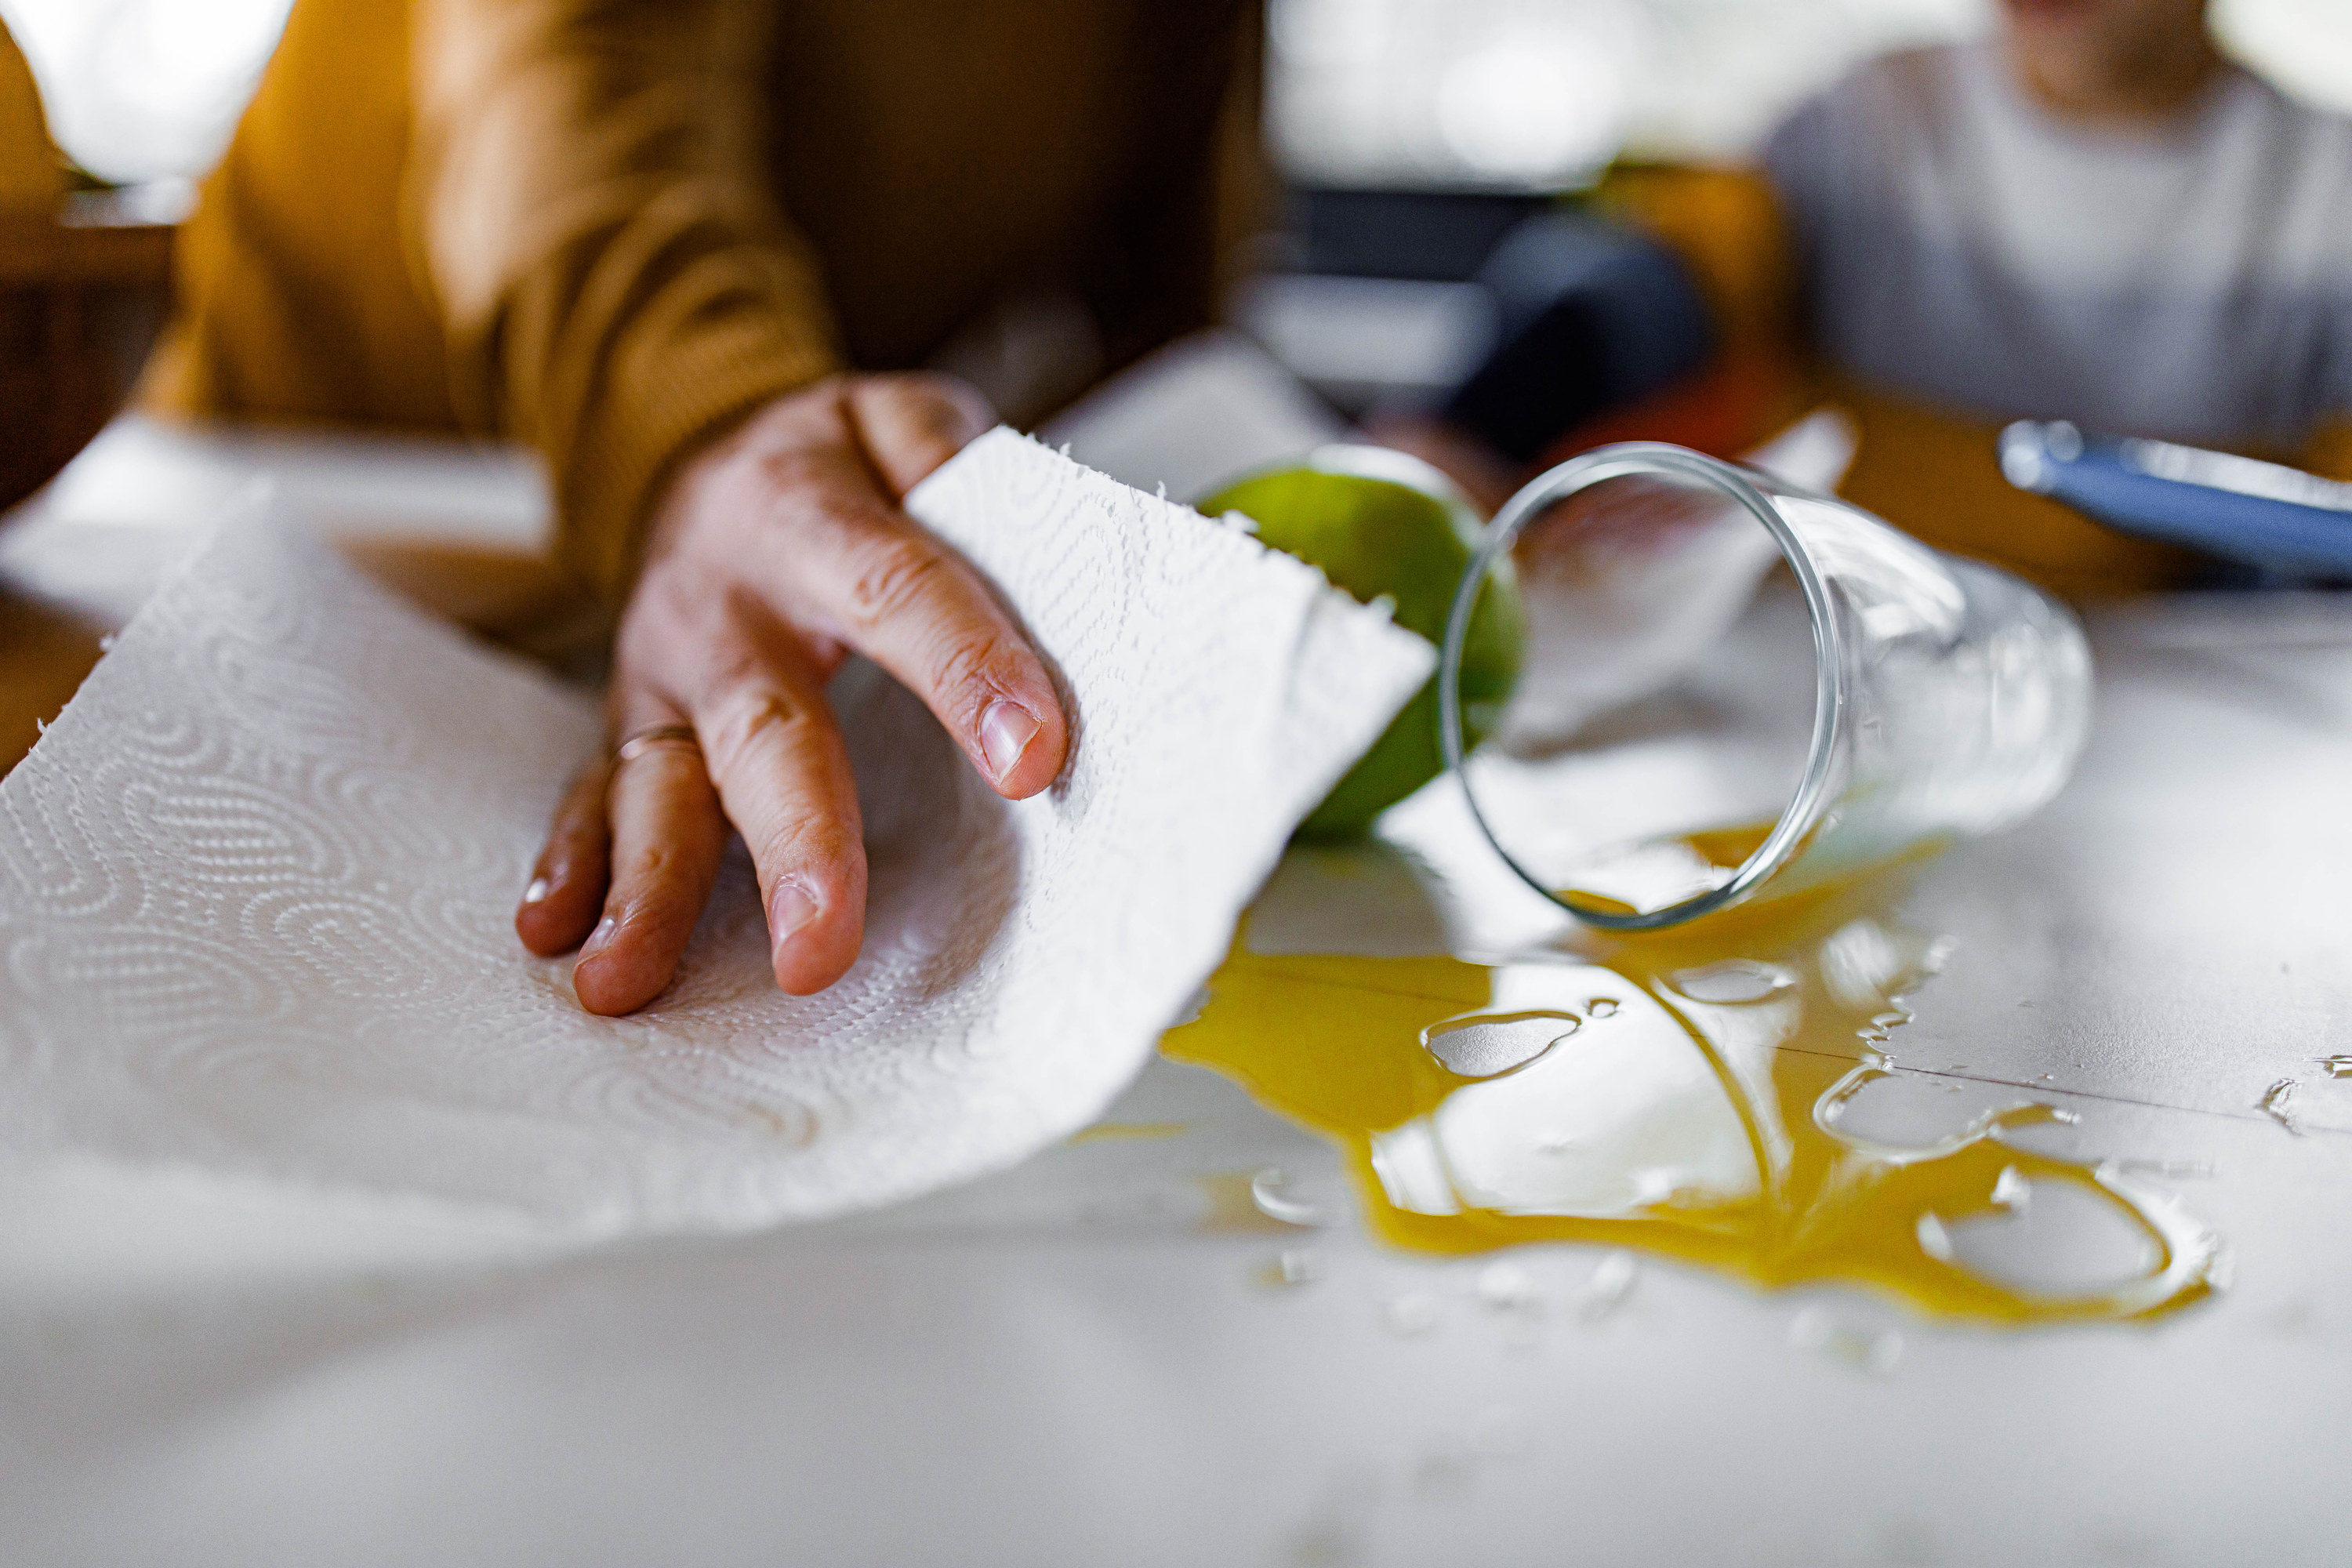 Closeup of a hand cleaning up spilled juice with a paper towel